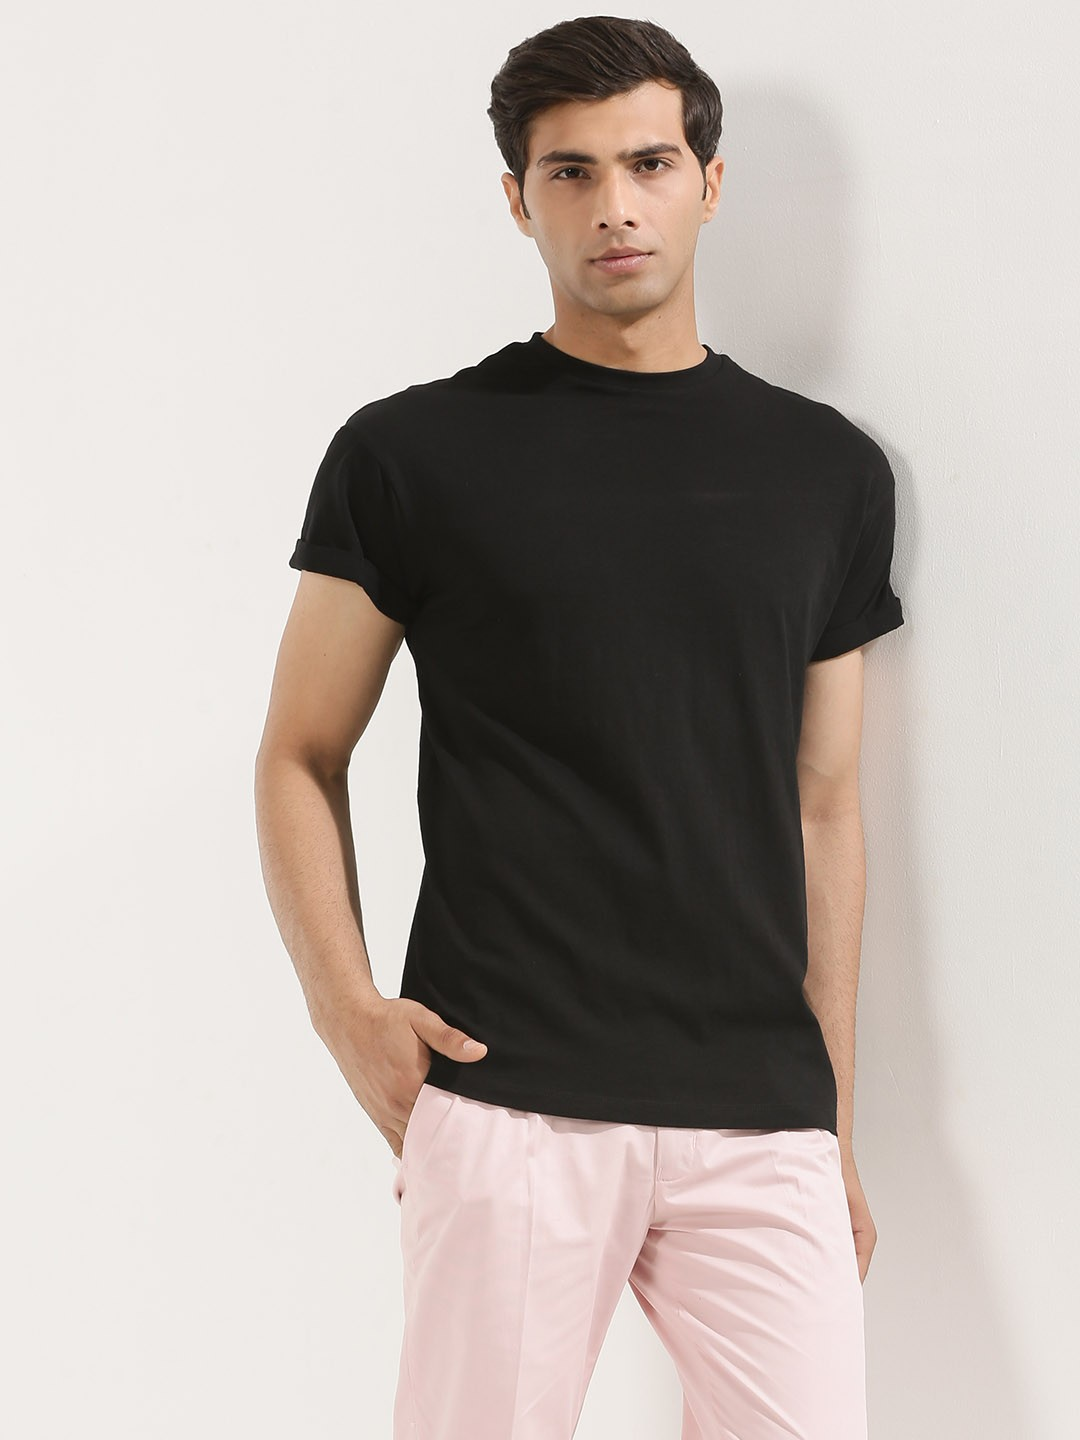 Black t shirt man - New Look High Roll T Shirt